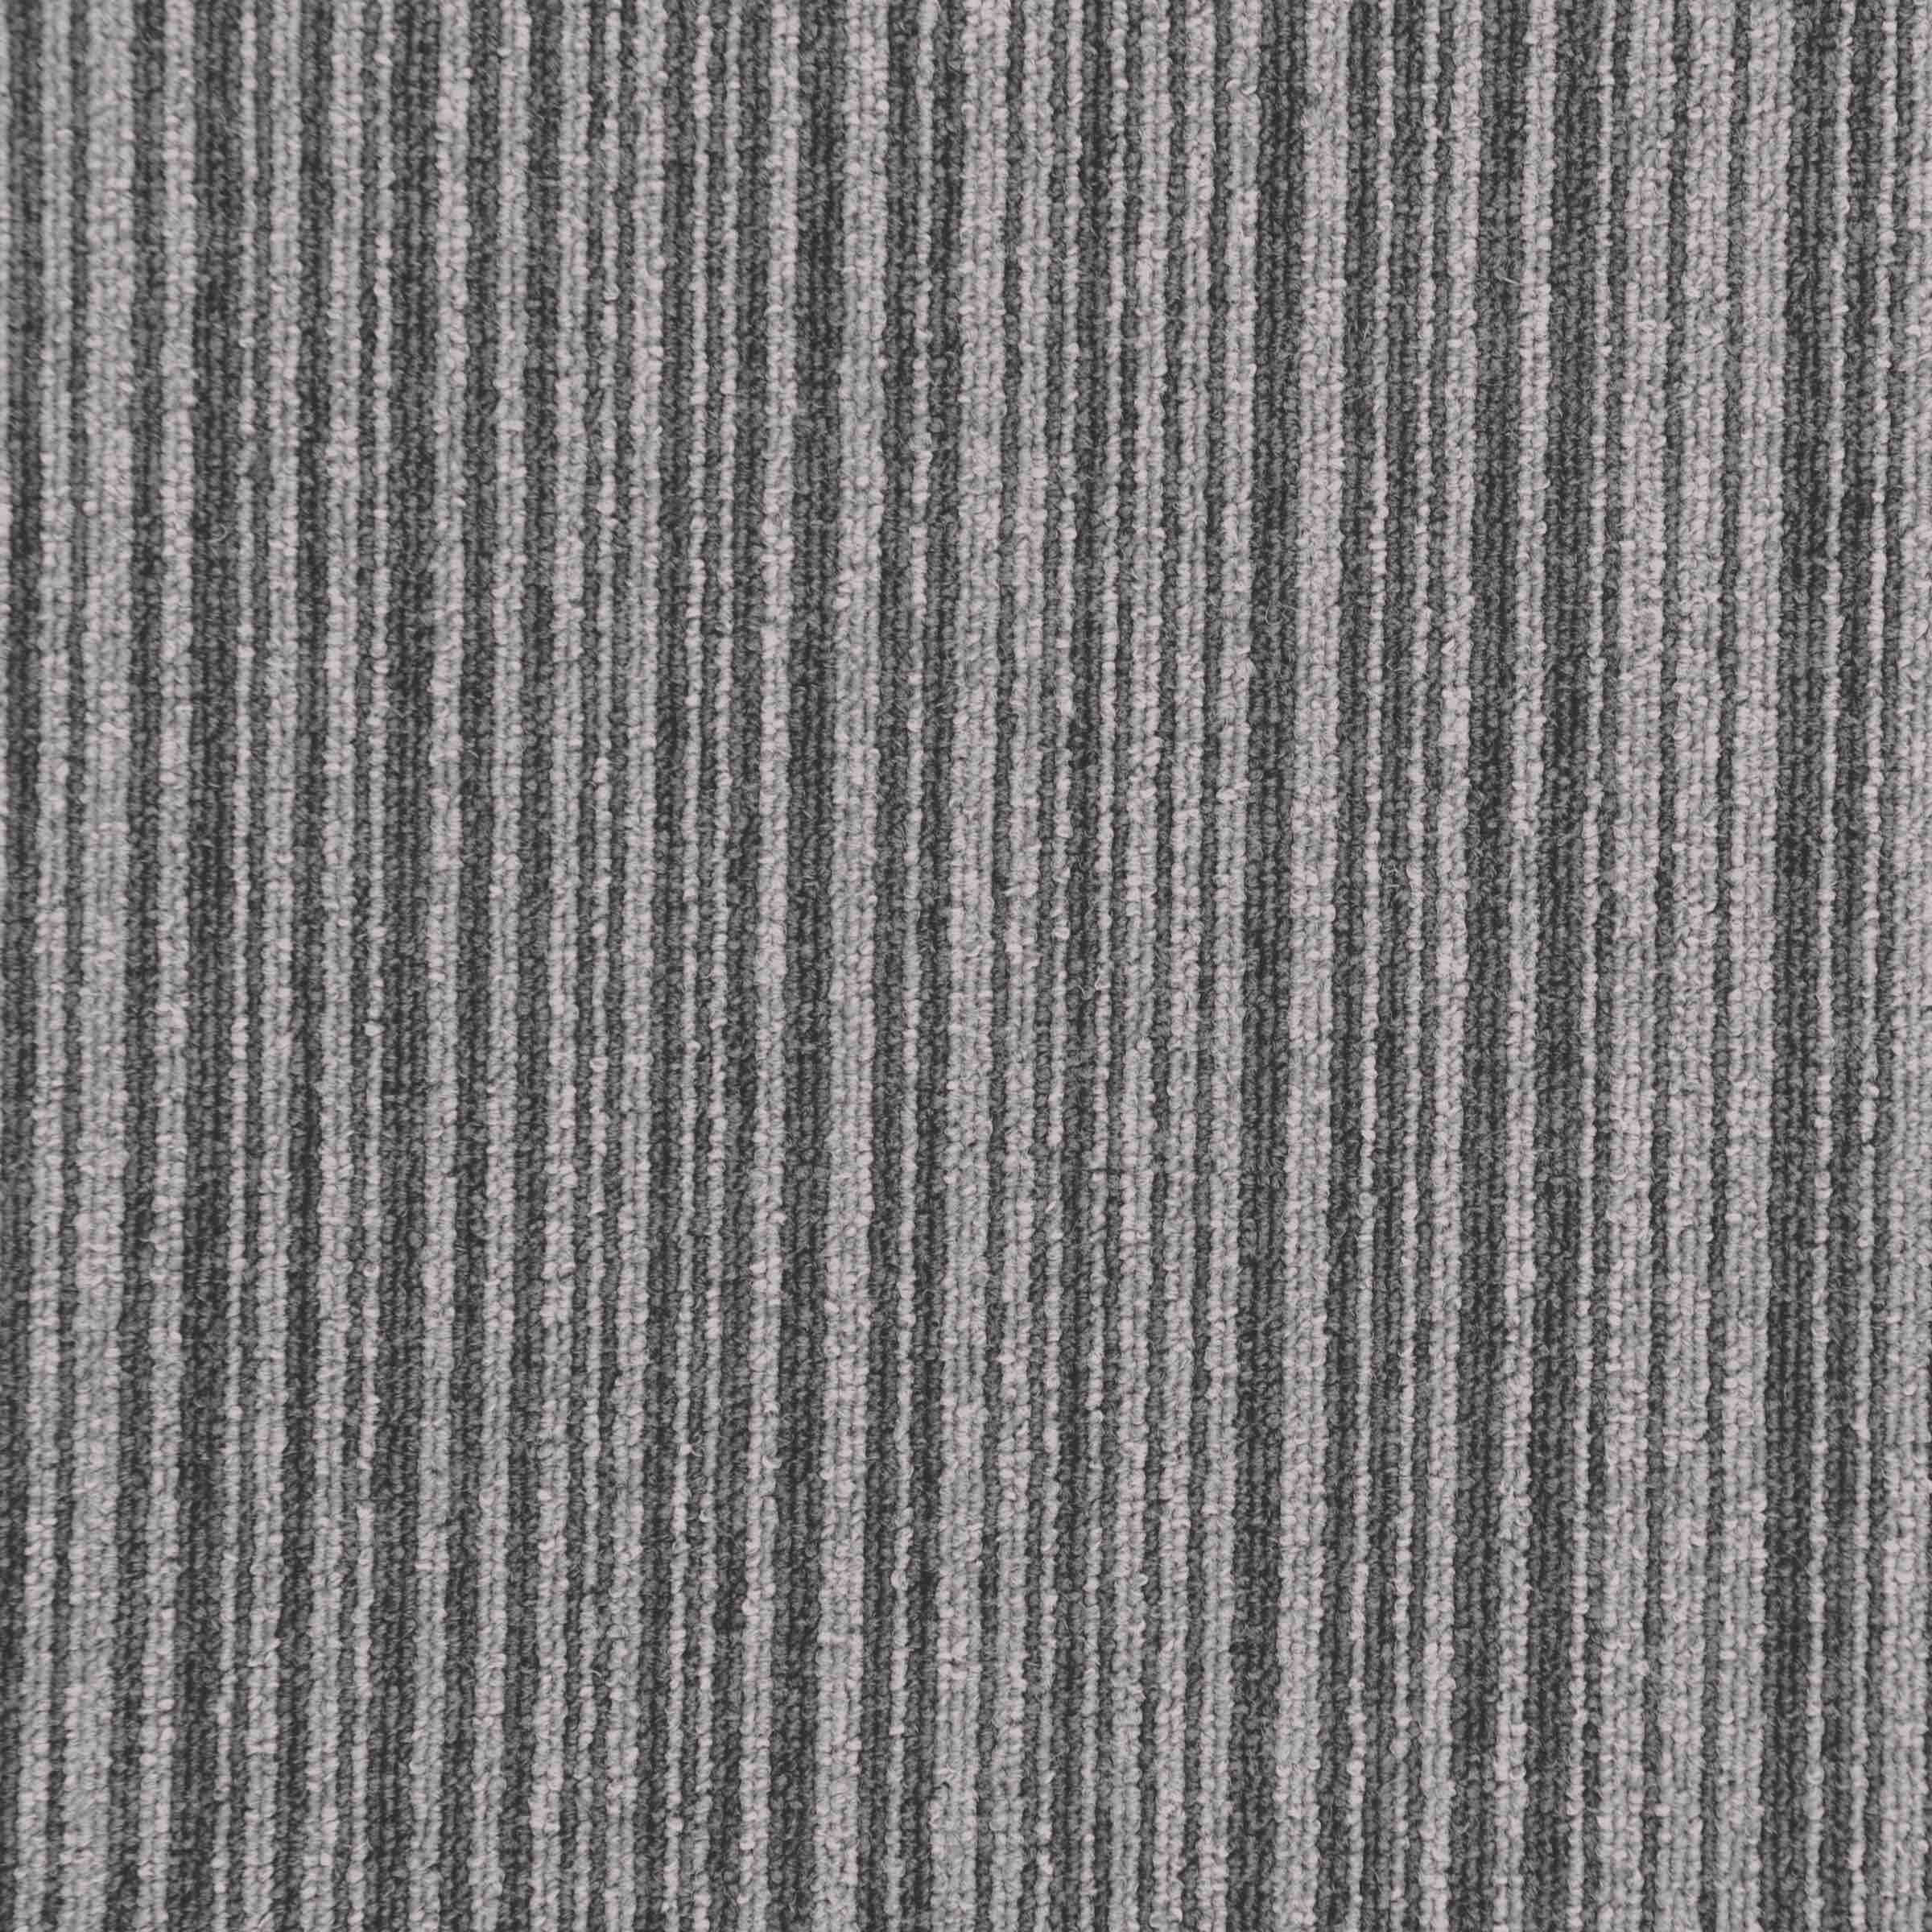 Vital | 878302 | Paragon Carpet Tiles | Commercial Carpet Tiles